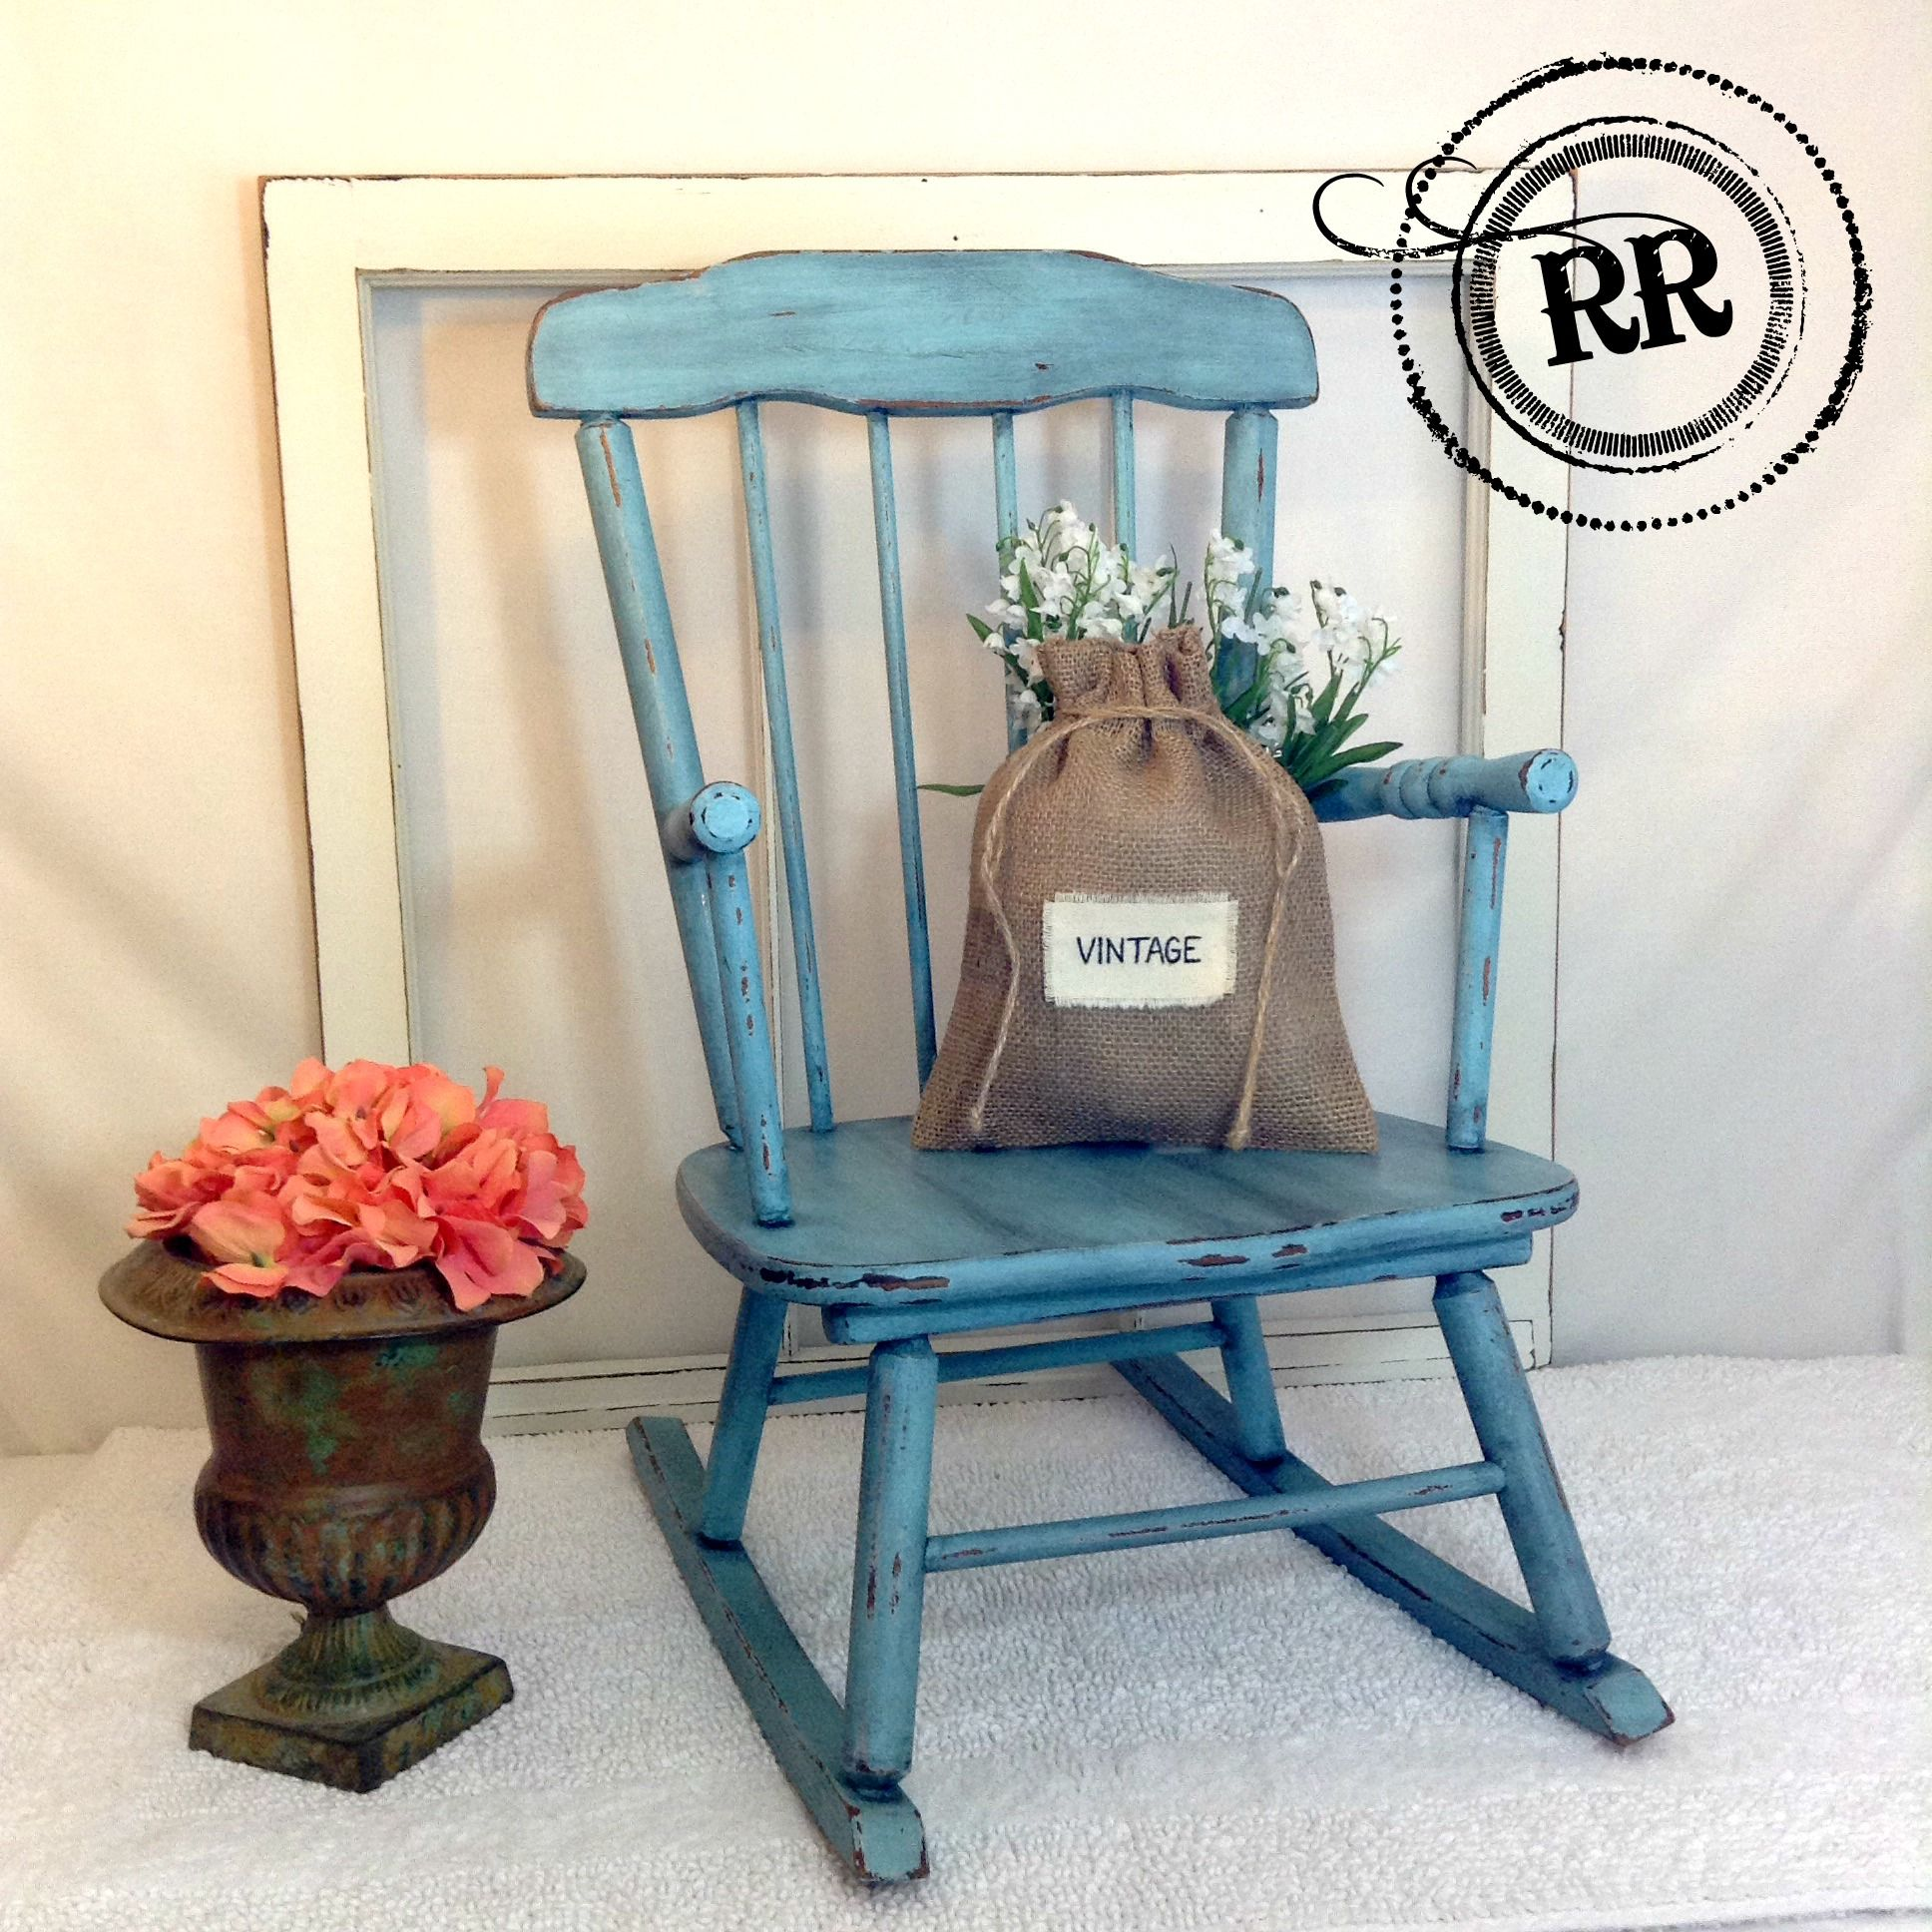 Adorable Vintage Child s Rocking Chair Painted with homemade